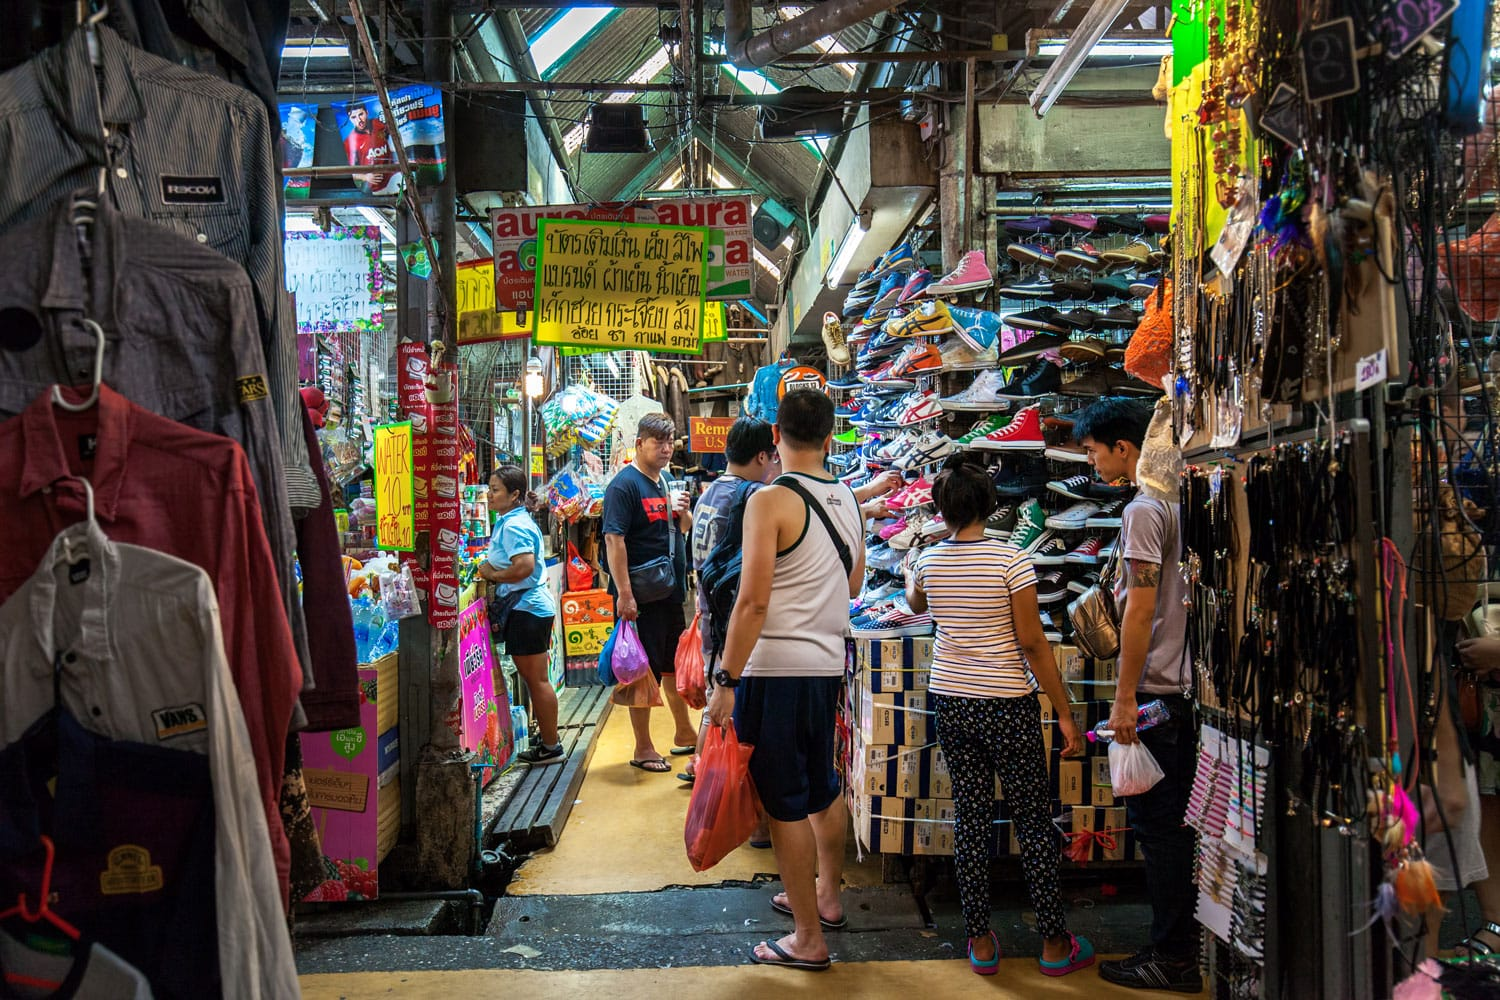 Tourist are shopping at Chatuchak Market in Bangkok, Thailand.